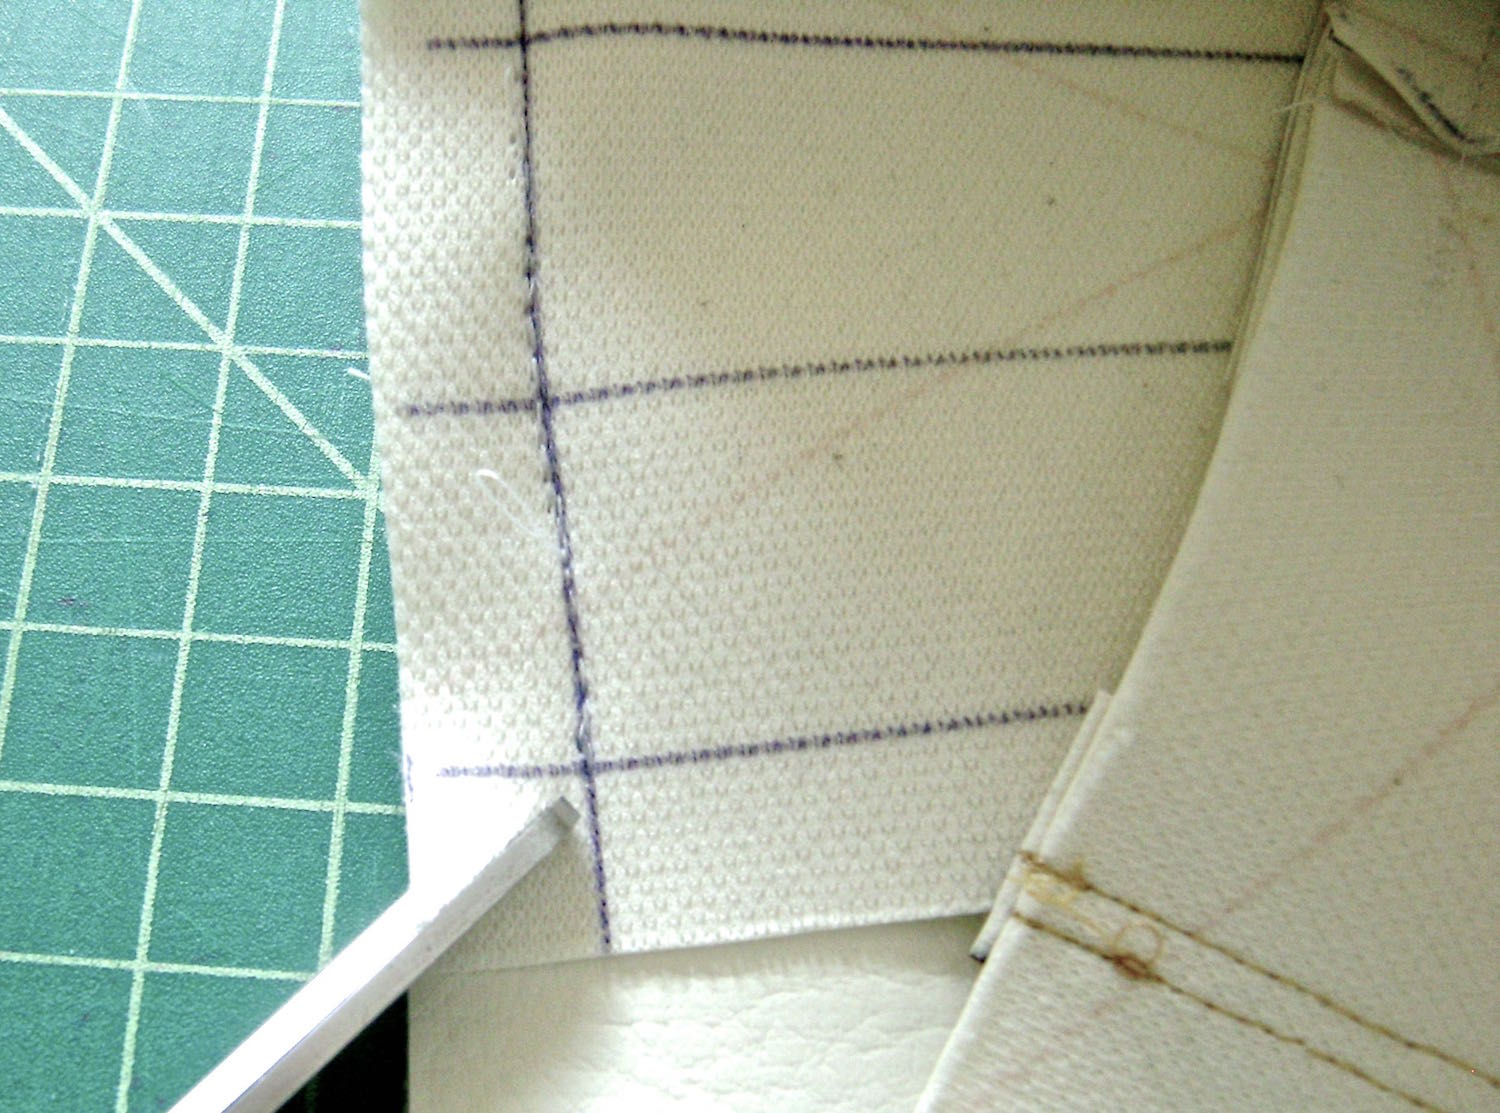 "step 6 -    Bottom  On the wrong side of the center bottom piece, draw lines .50"" from all edges and a line down the center.  Make a small slit less than 1/2"" on the front and back purse pieces 1"" away from each side seam.  Stitch the center purse bottom to the sides then the front and back with right sides together.  Cut a diagonal slit in the corners of the bottom piece.  Pivot the stitch at the slits to create clean, square corners."